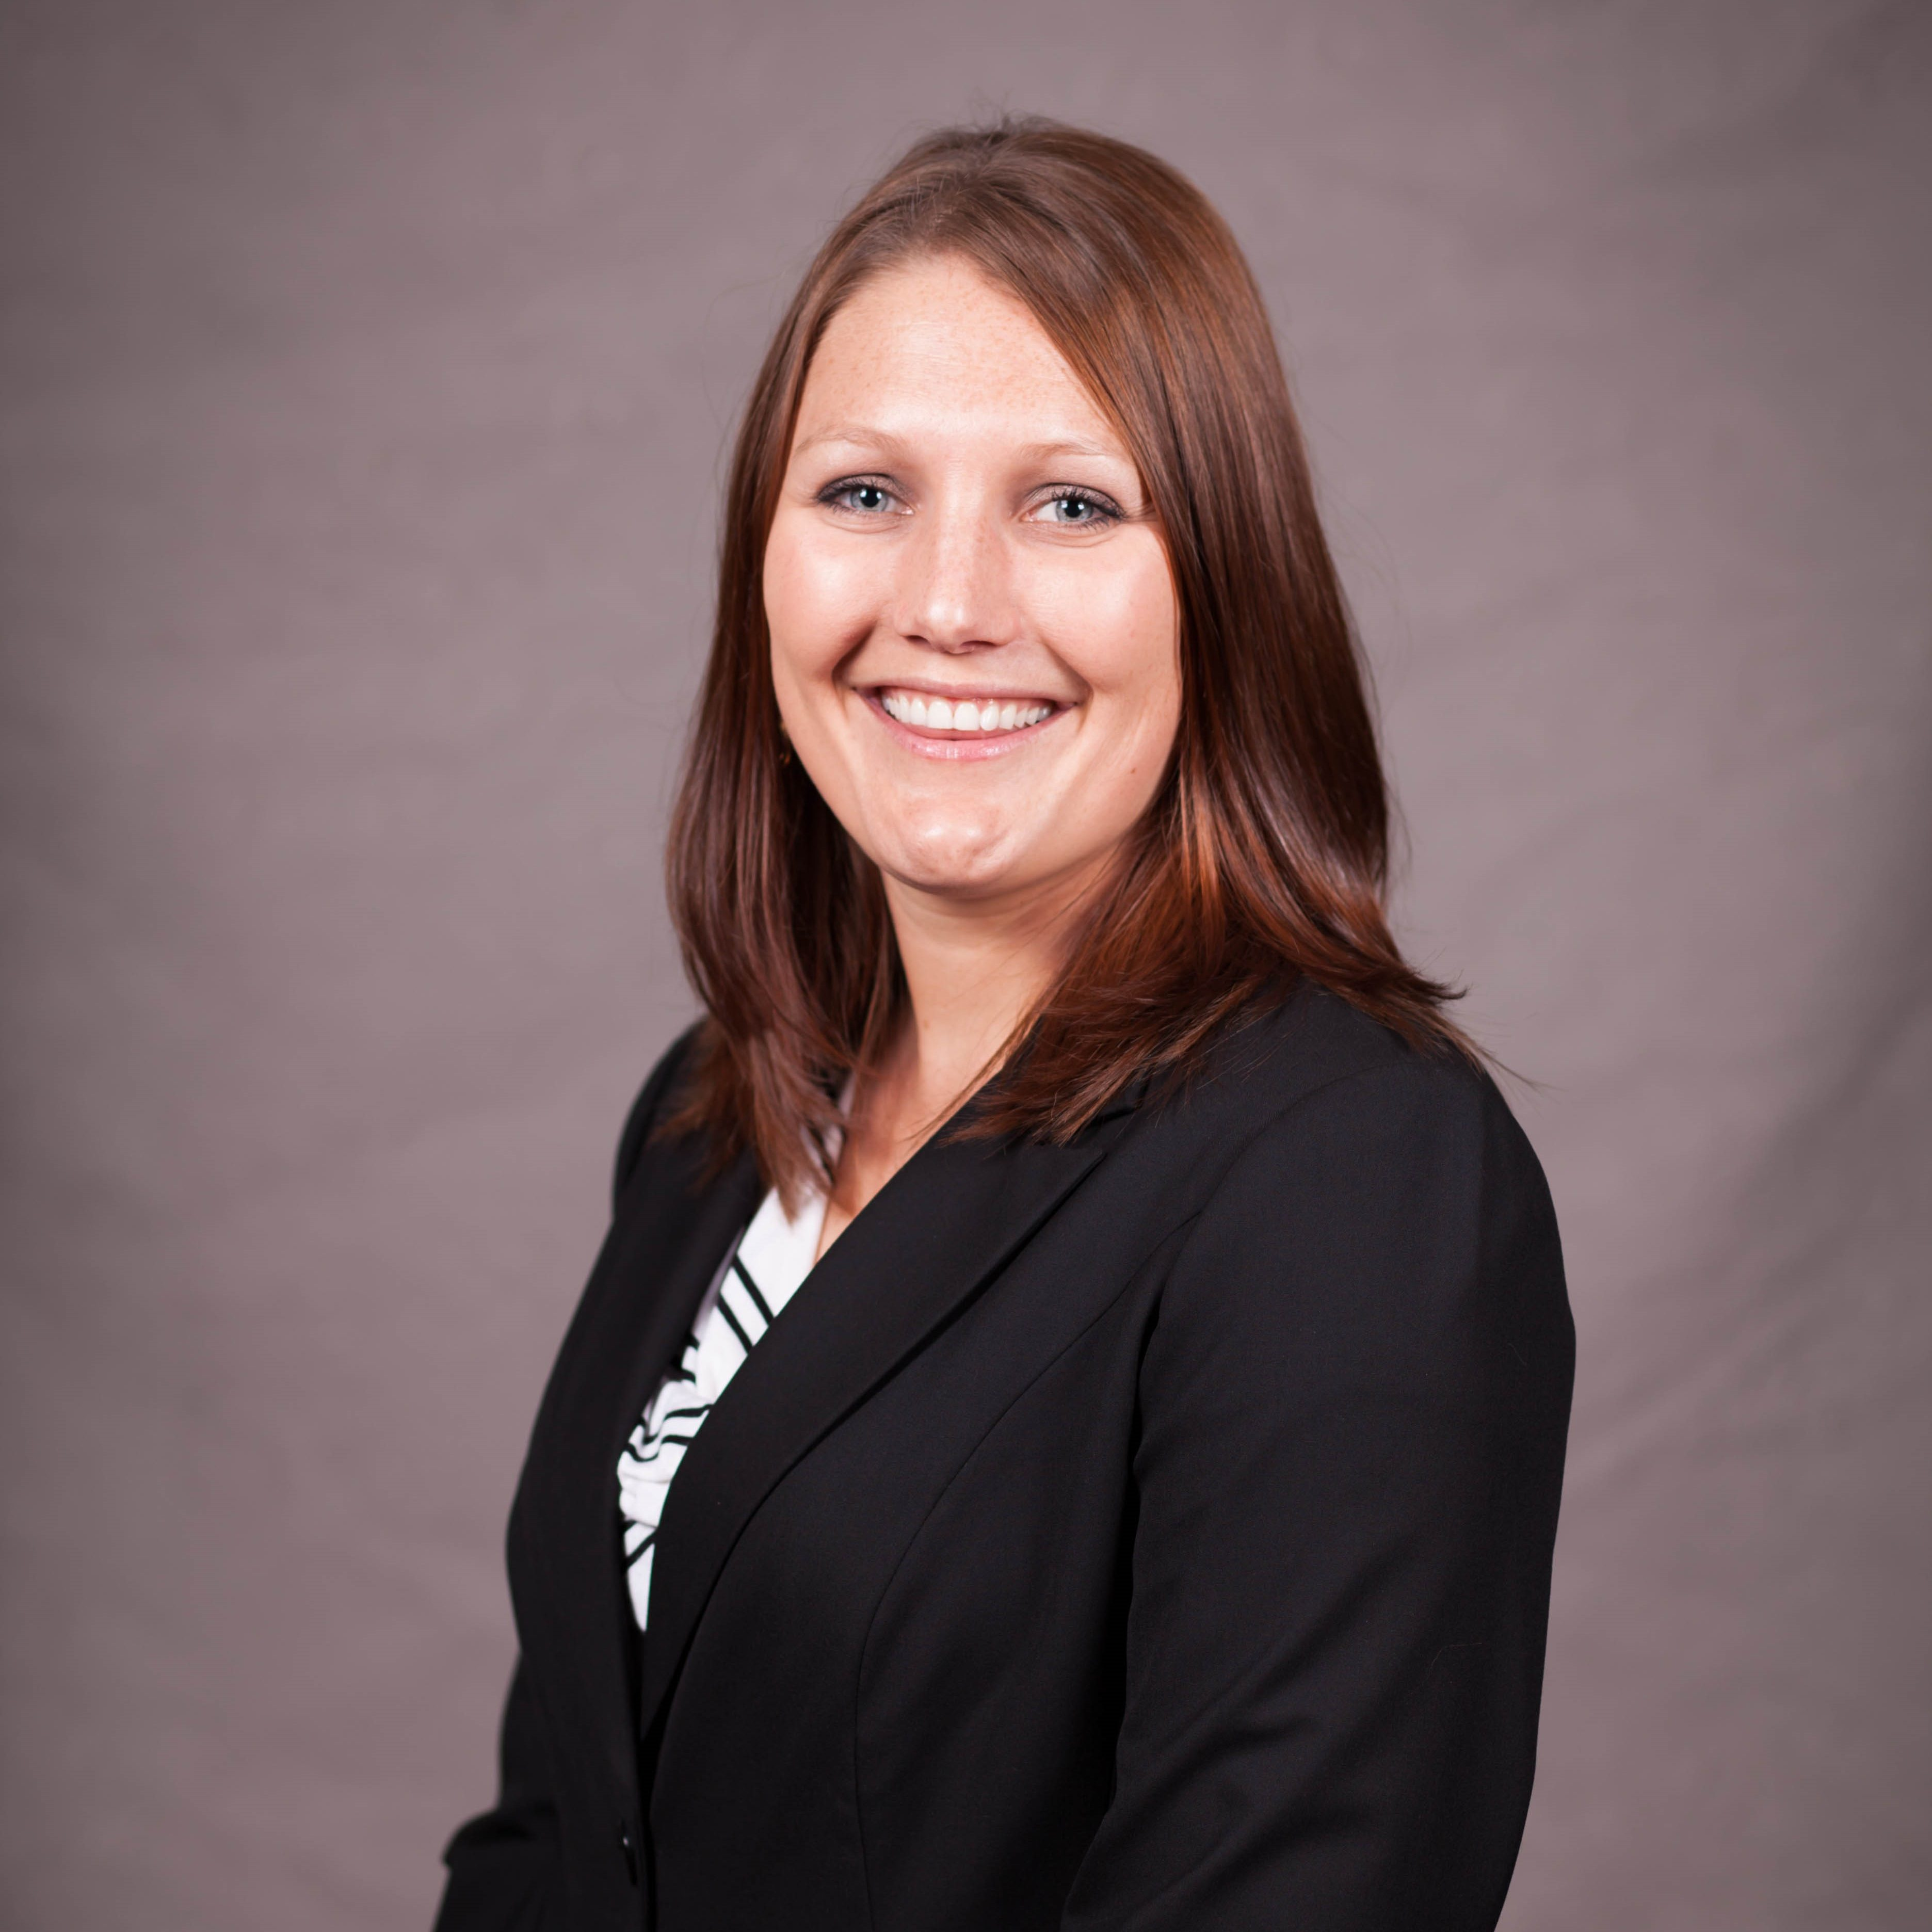 Rachel_Tietjen_dentist_South Sioux City -2013